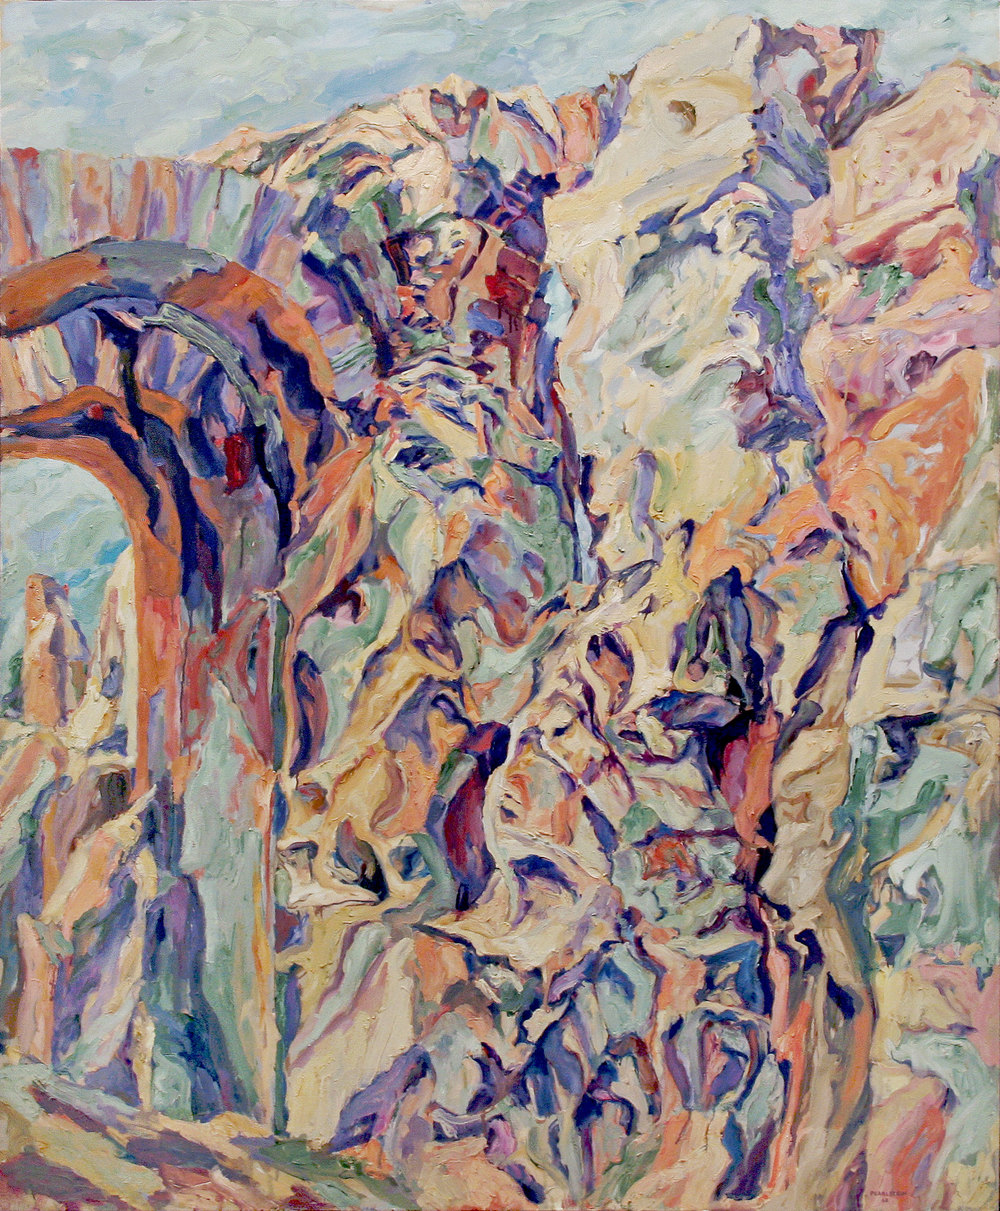 IMPERIAL PALACE #7 , 1960 Oil on canvas 58 x 48 inches